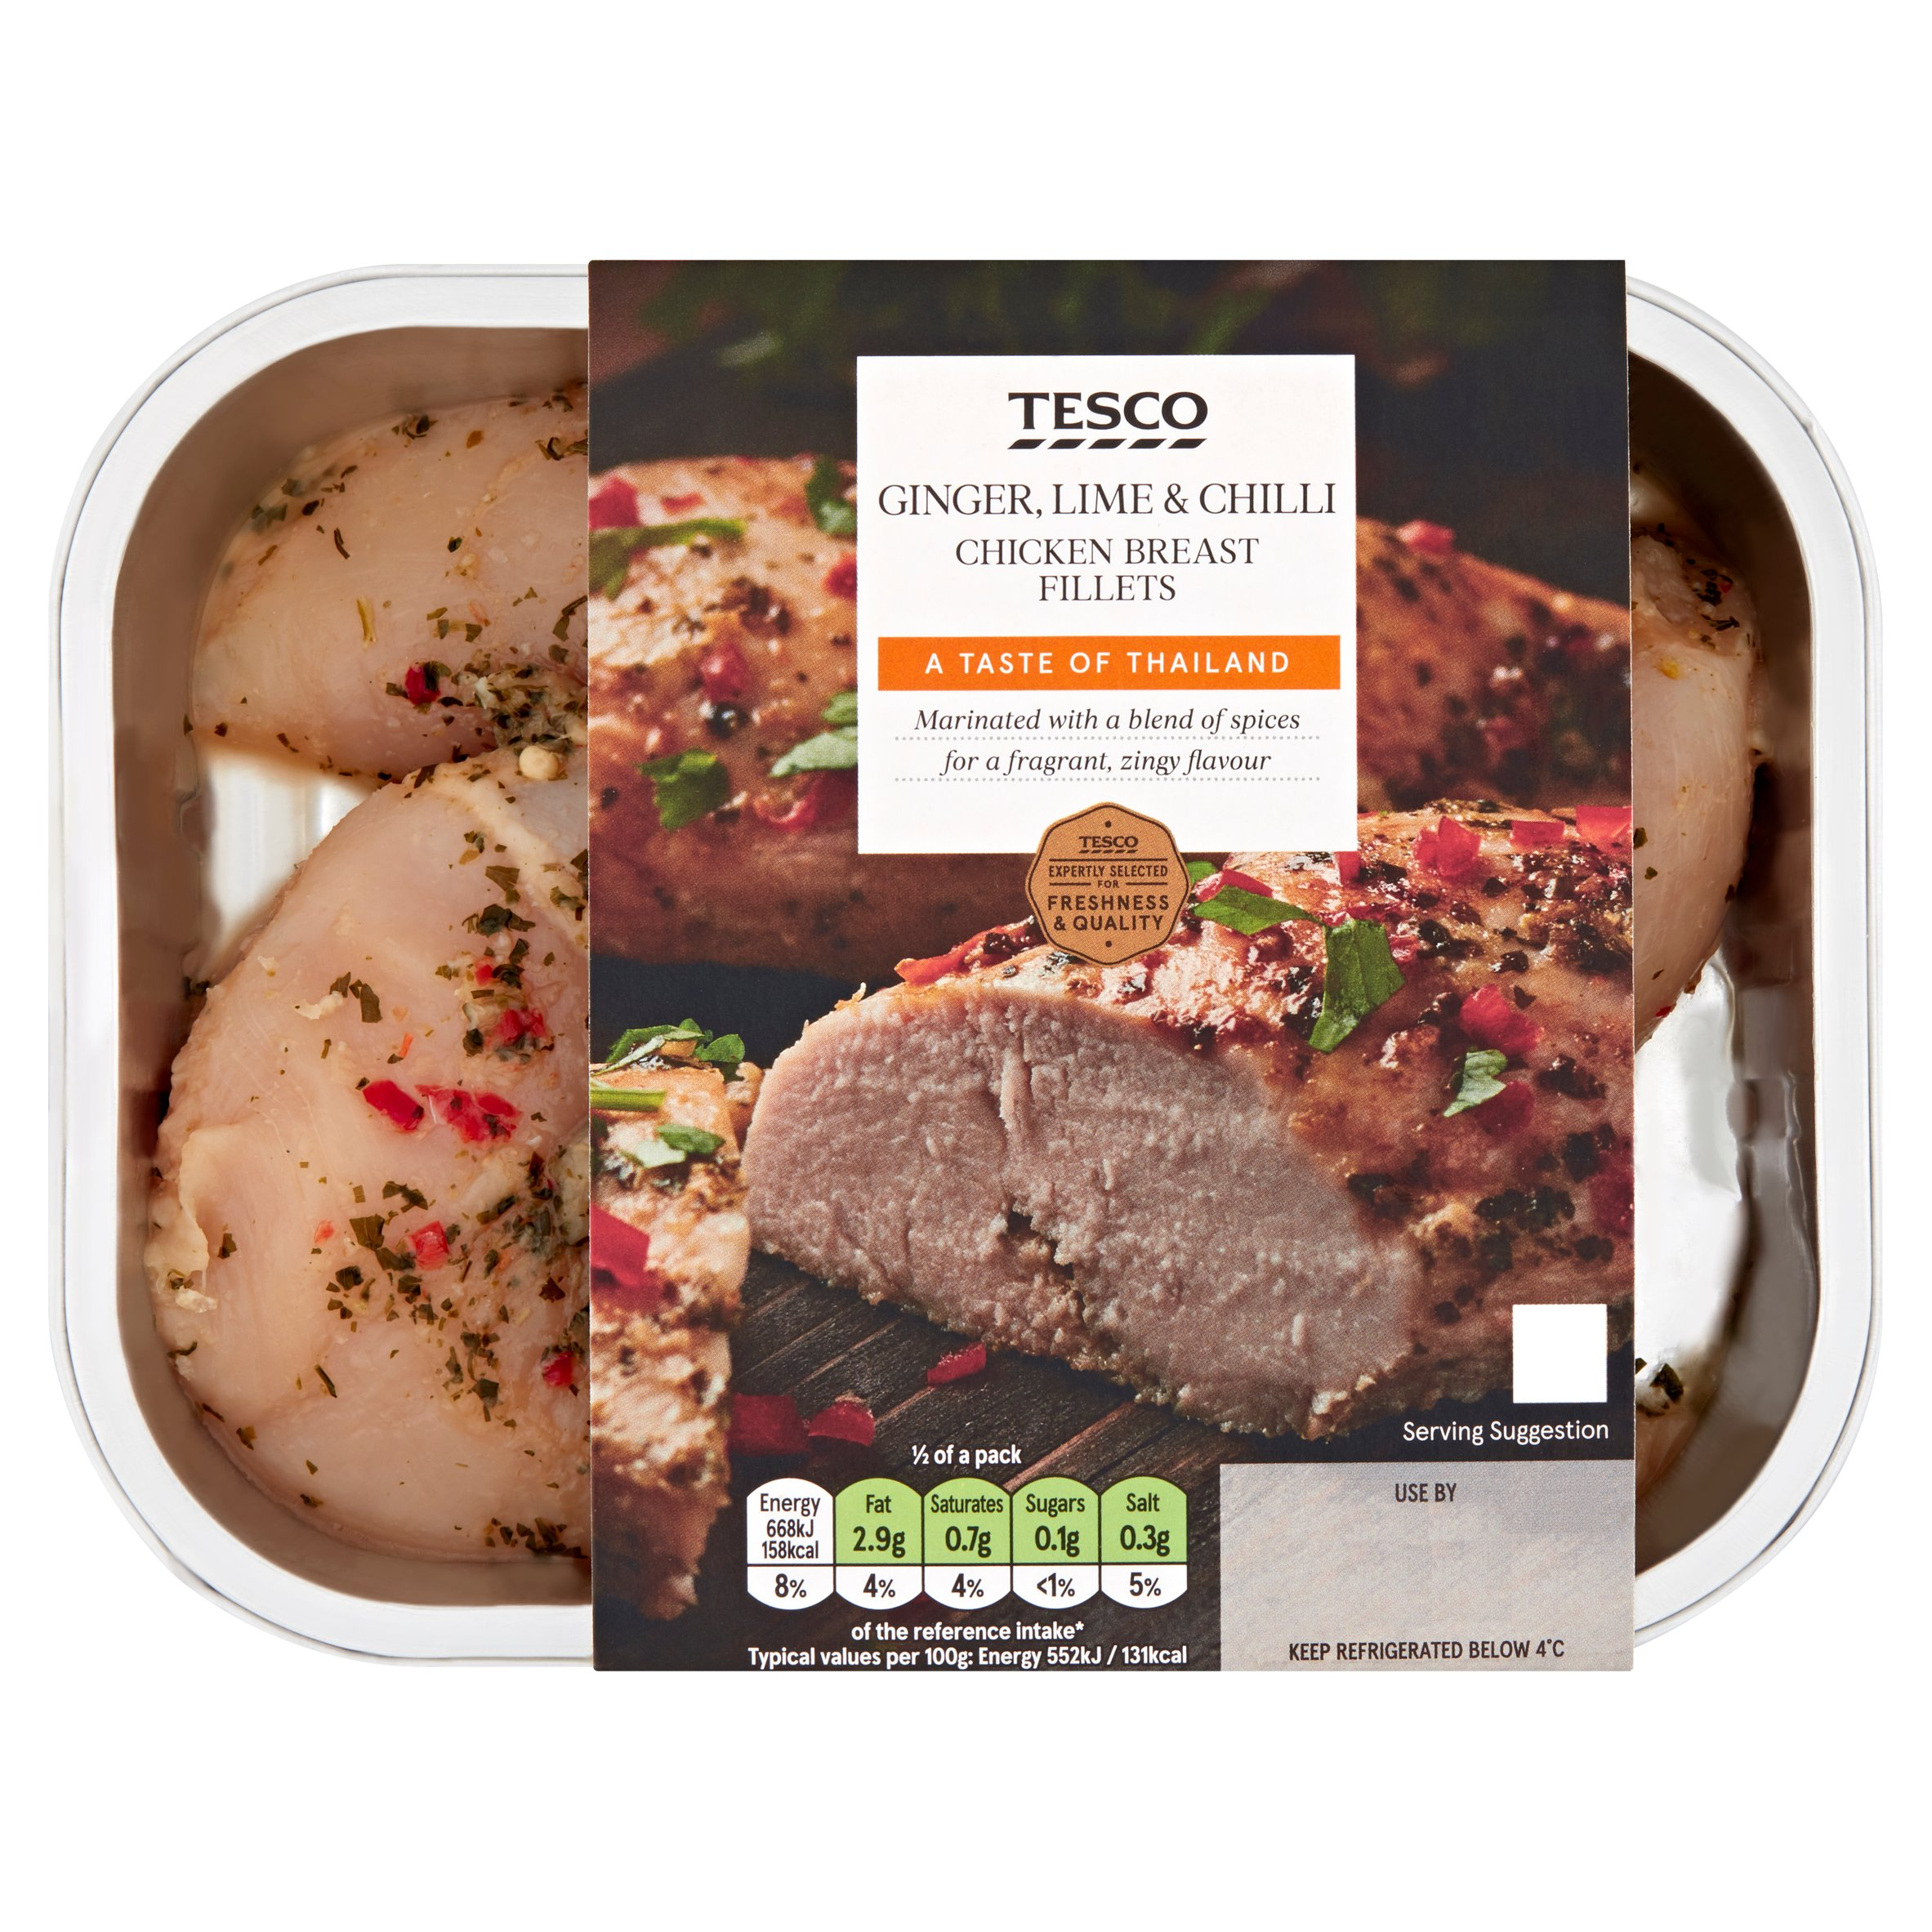 Tesco Ginger, Lime & Chilli Chicken Breasts 290G